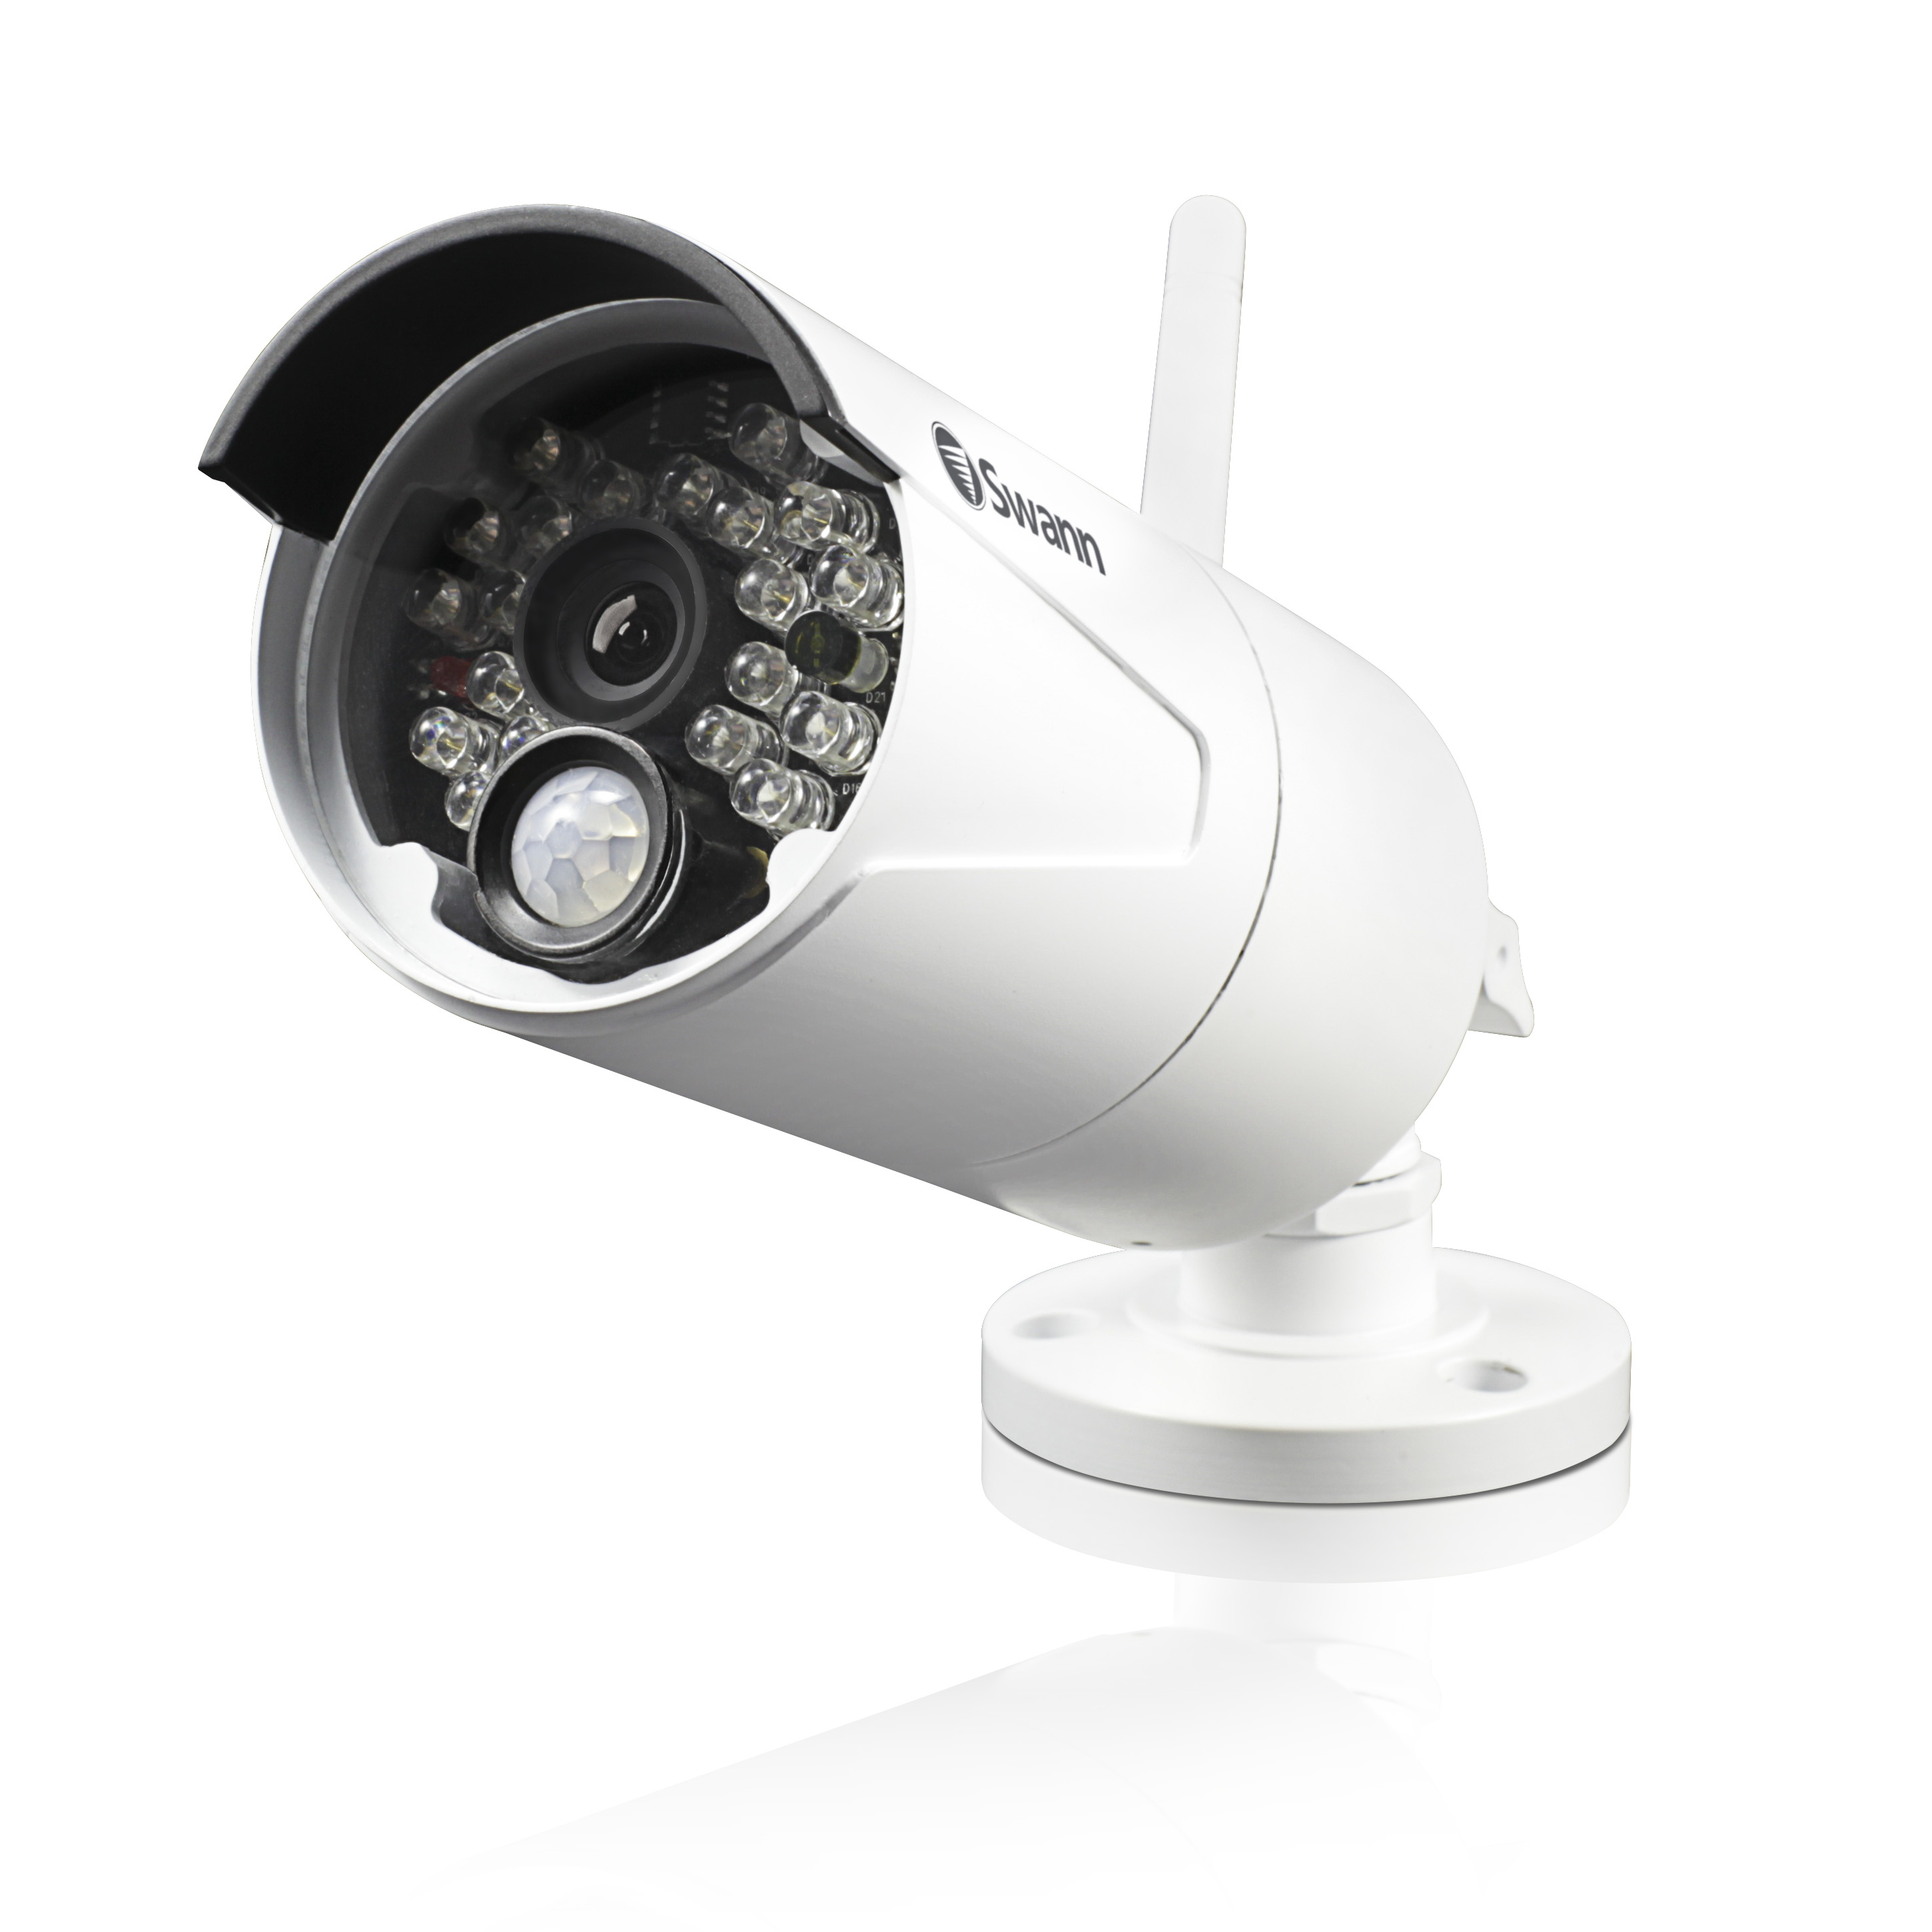 digicam1 digital wifi security camera for wifi monitor product s